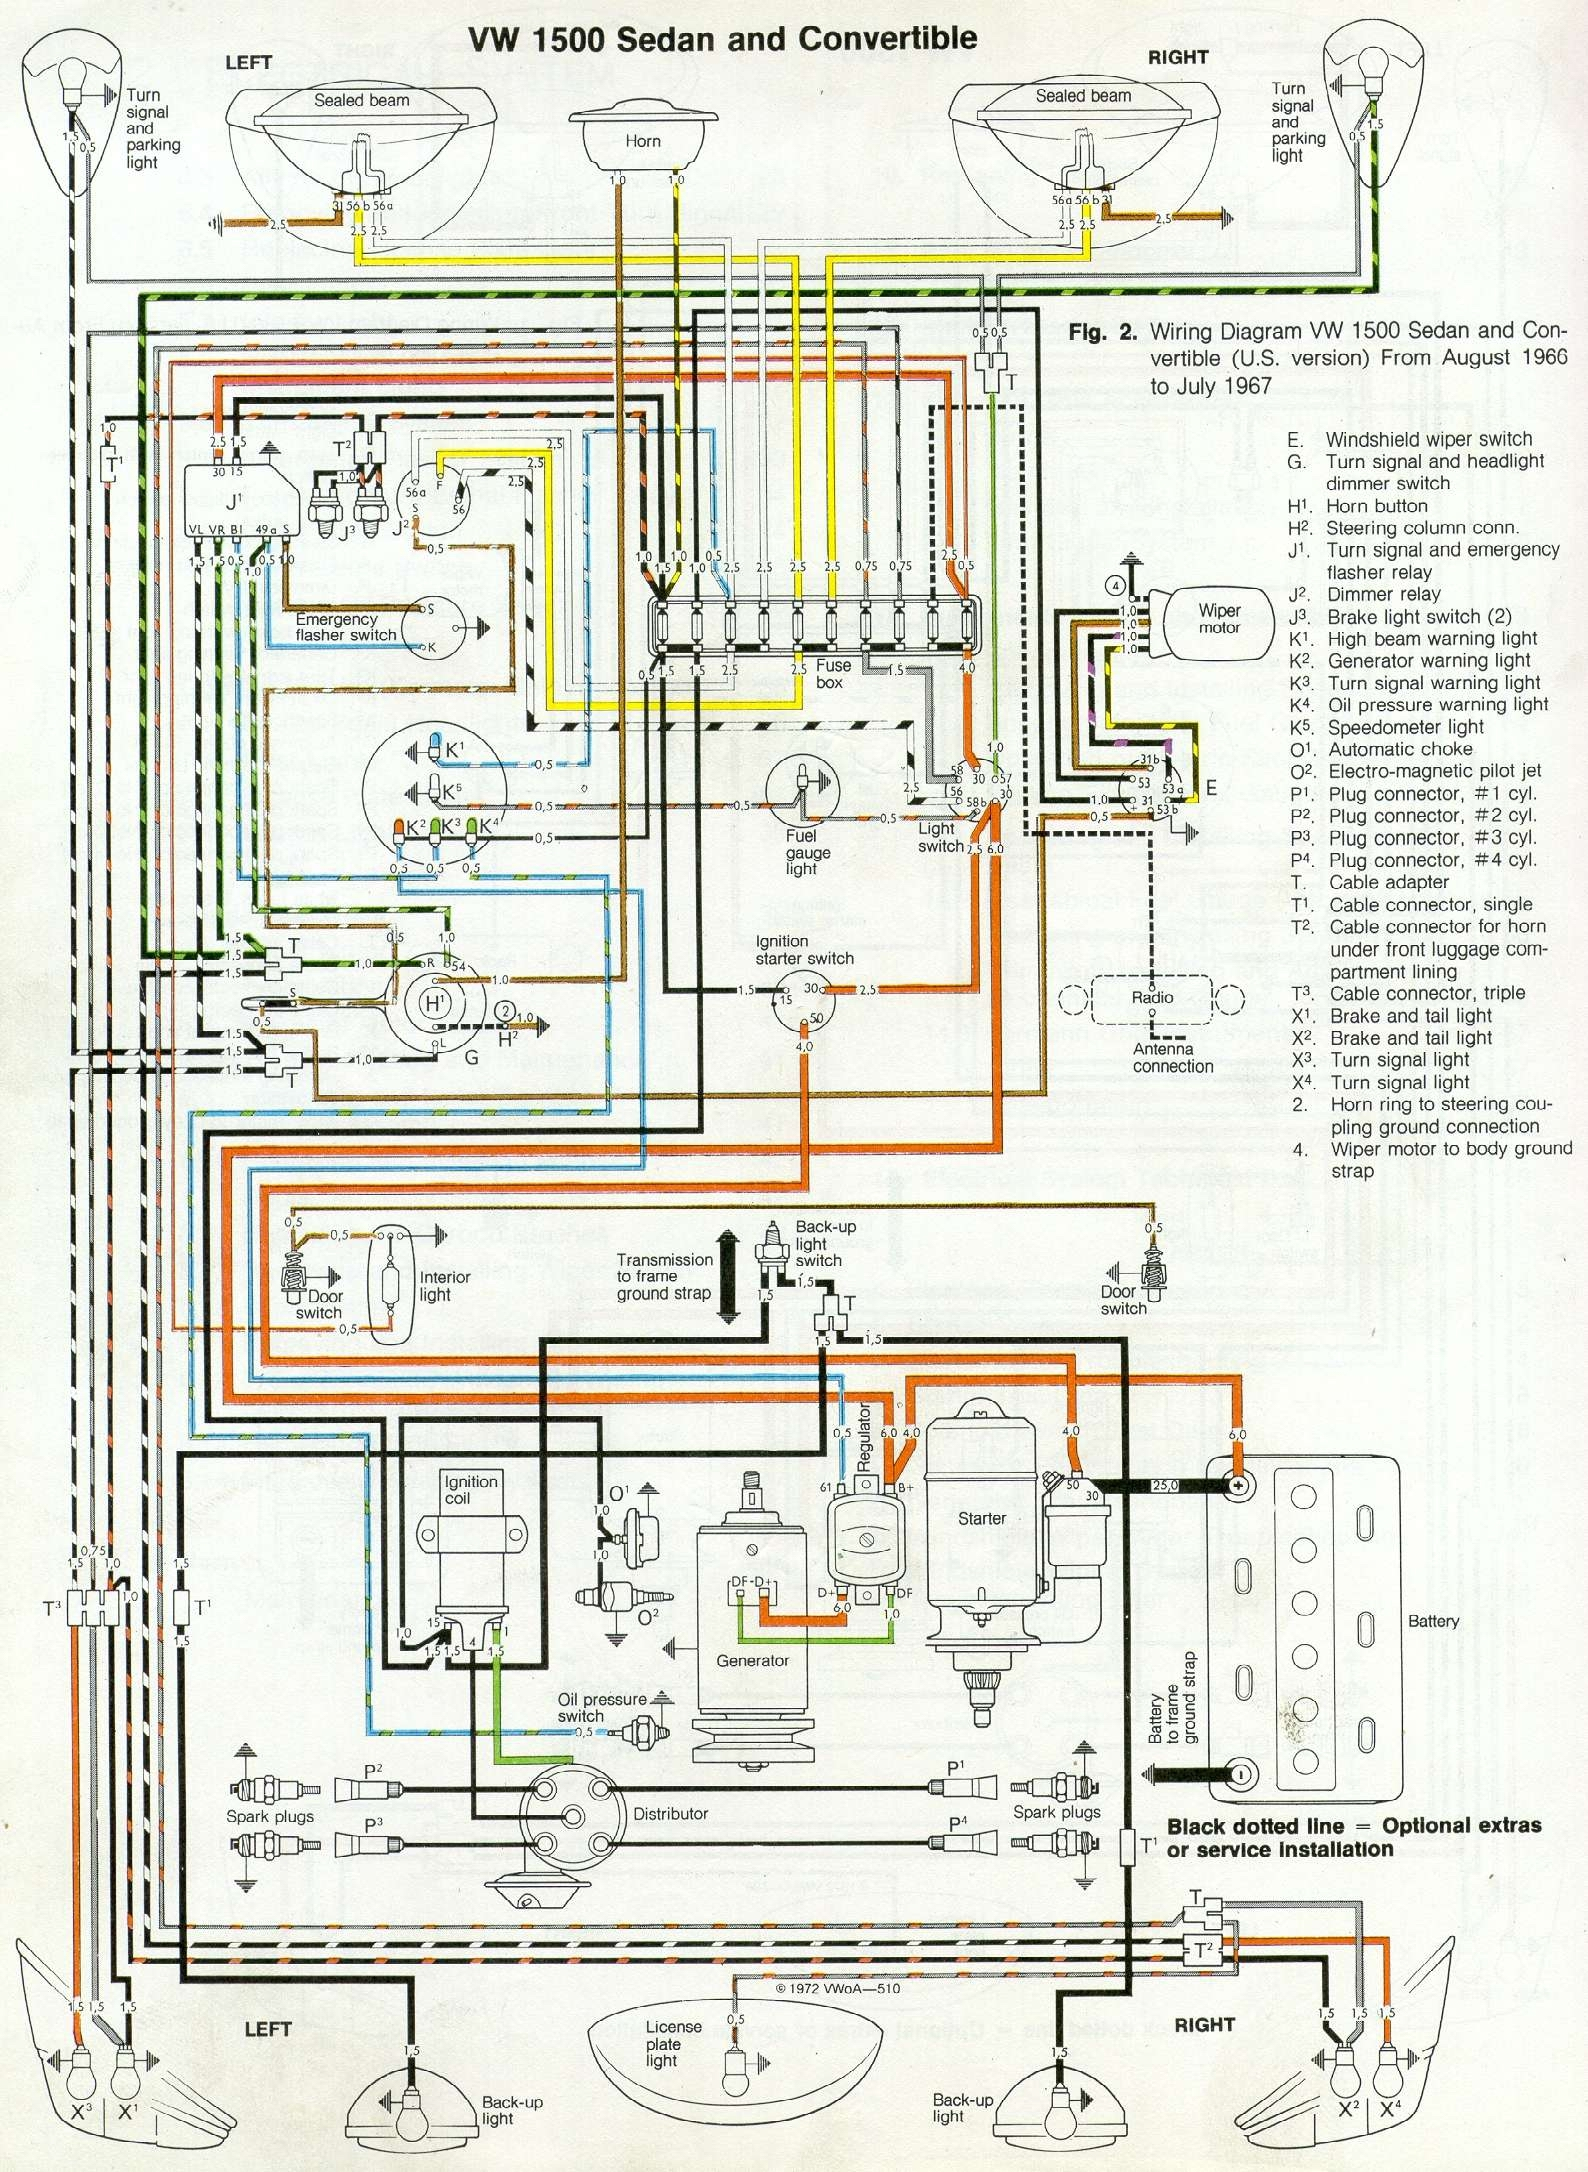 67 Vw Bug Wiring Diagram Reveolution Of Seriel Kohler Engine Loq0467j0394 66 And Beetle 1967 Rh 1967beetle Com Harness